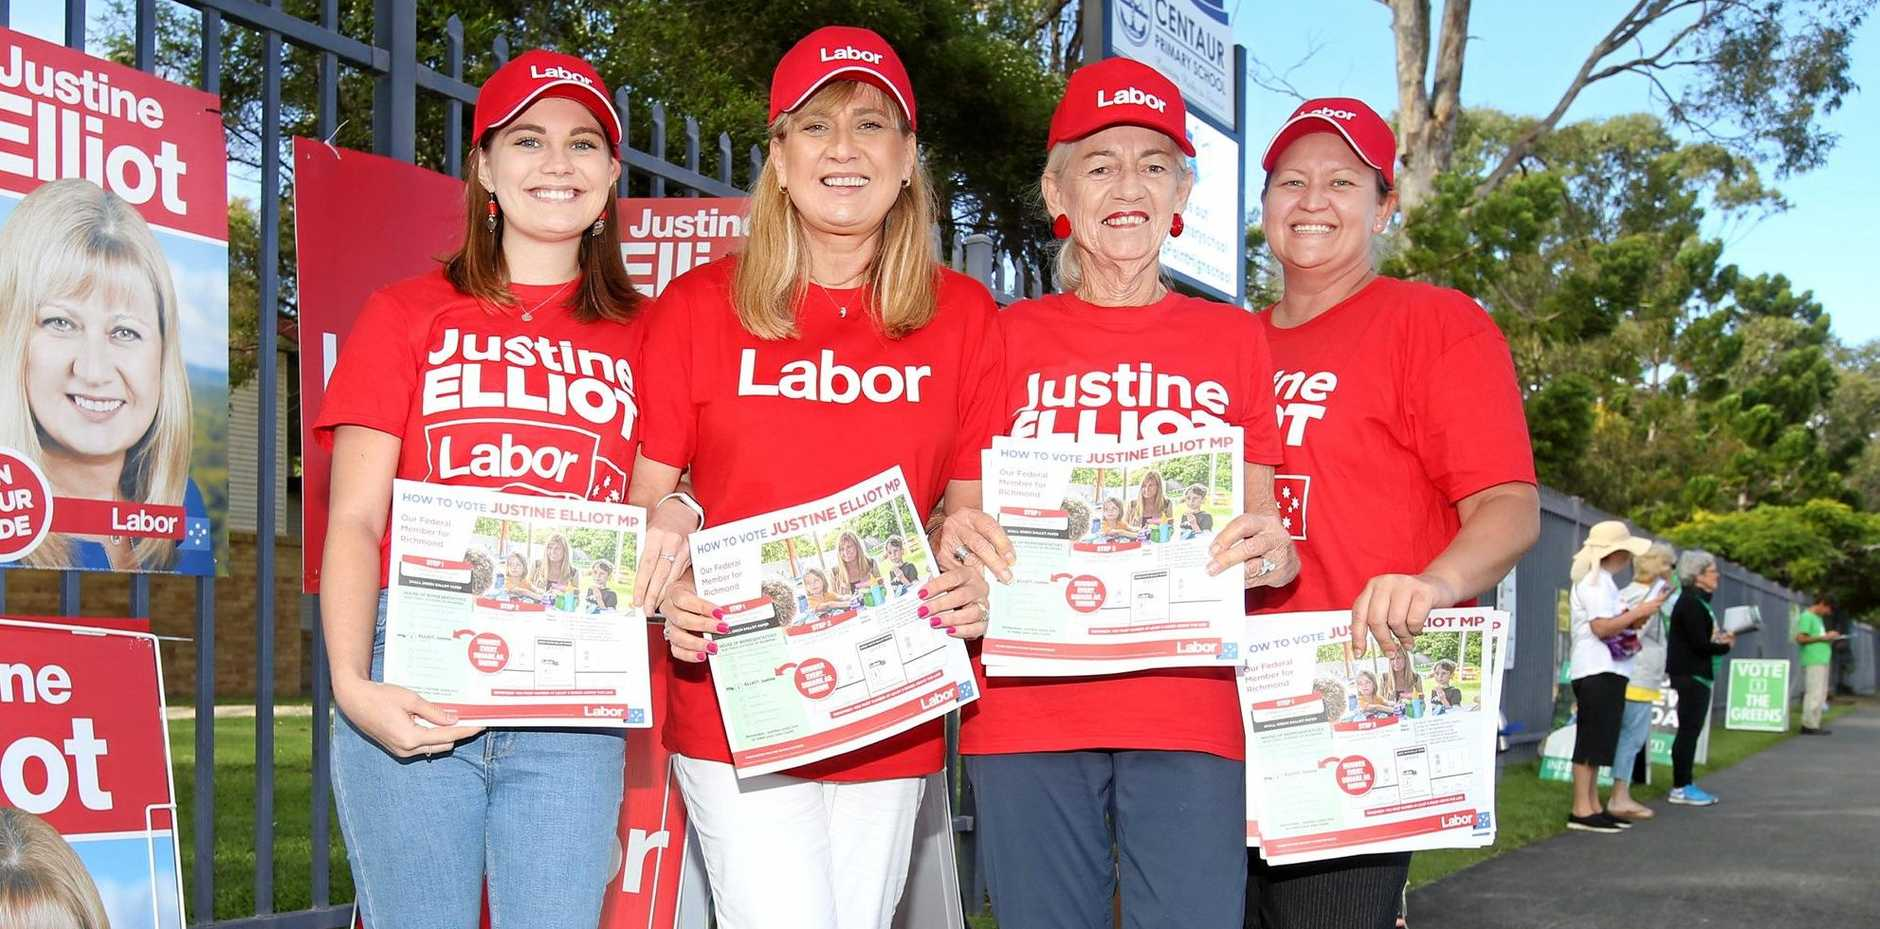 Federal Member for Richmond Justine Elliot (second from left) says Anthony Albanese should be the next leader of the Labor Party.